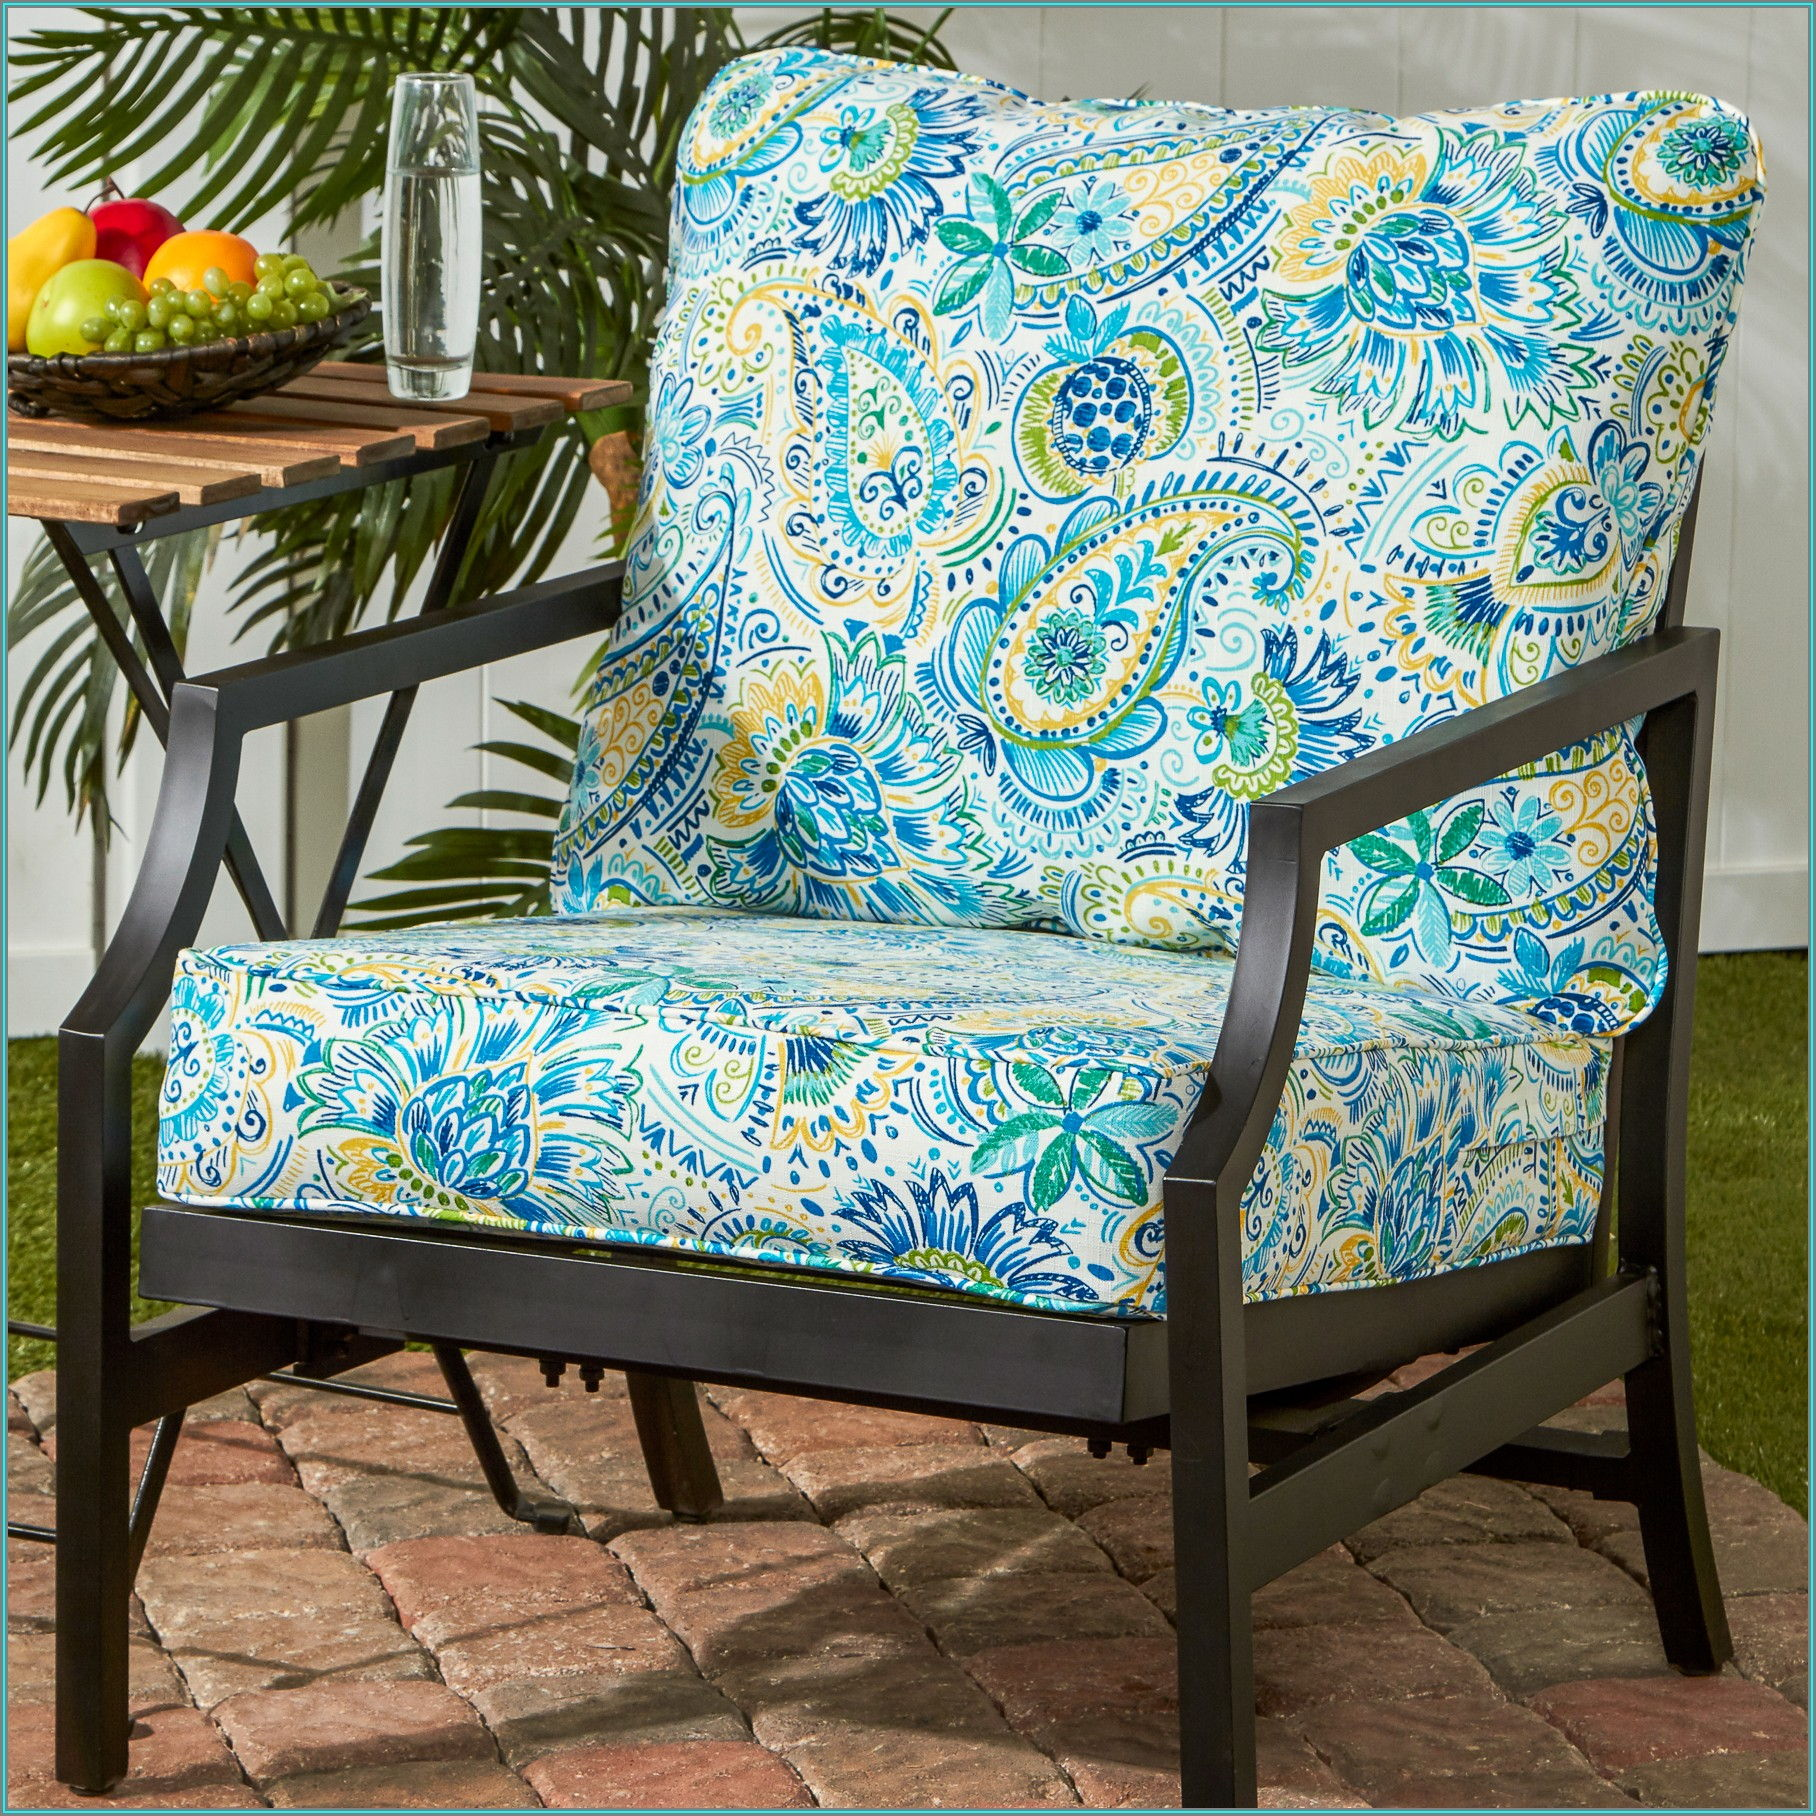 1 Piece Patio Chair Cushion